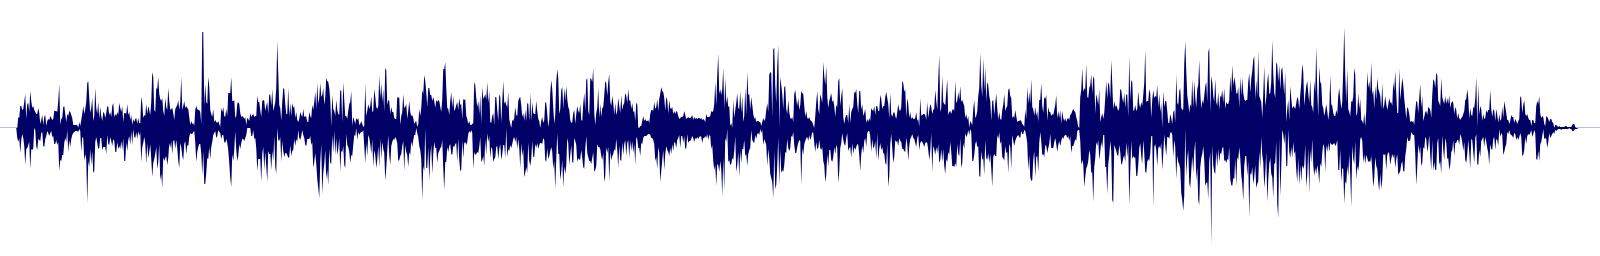 waveform of track #137133